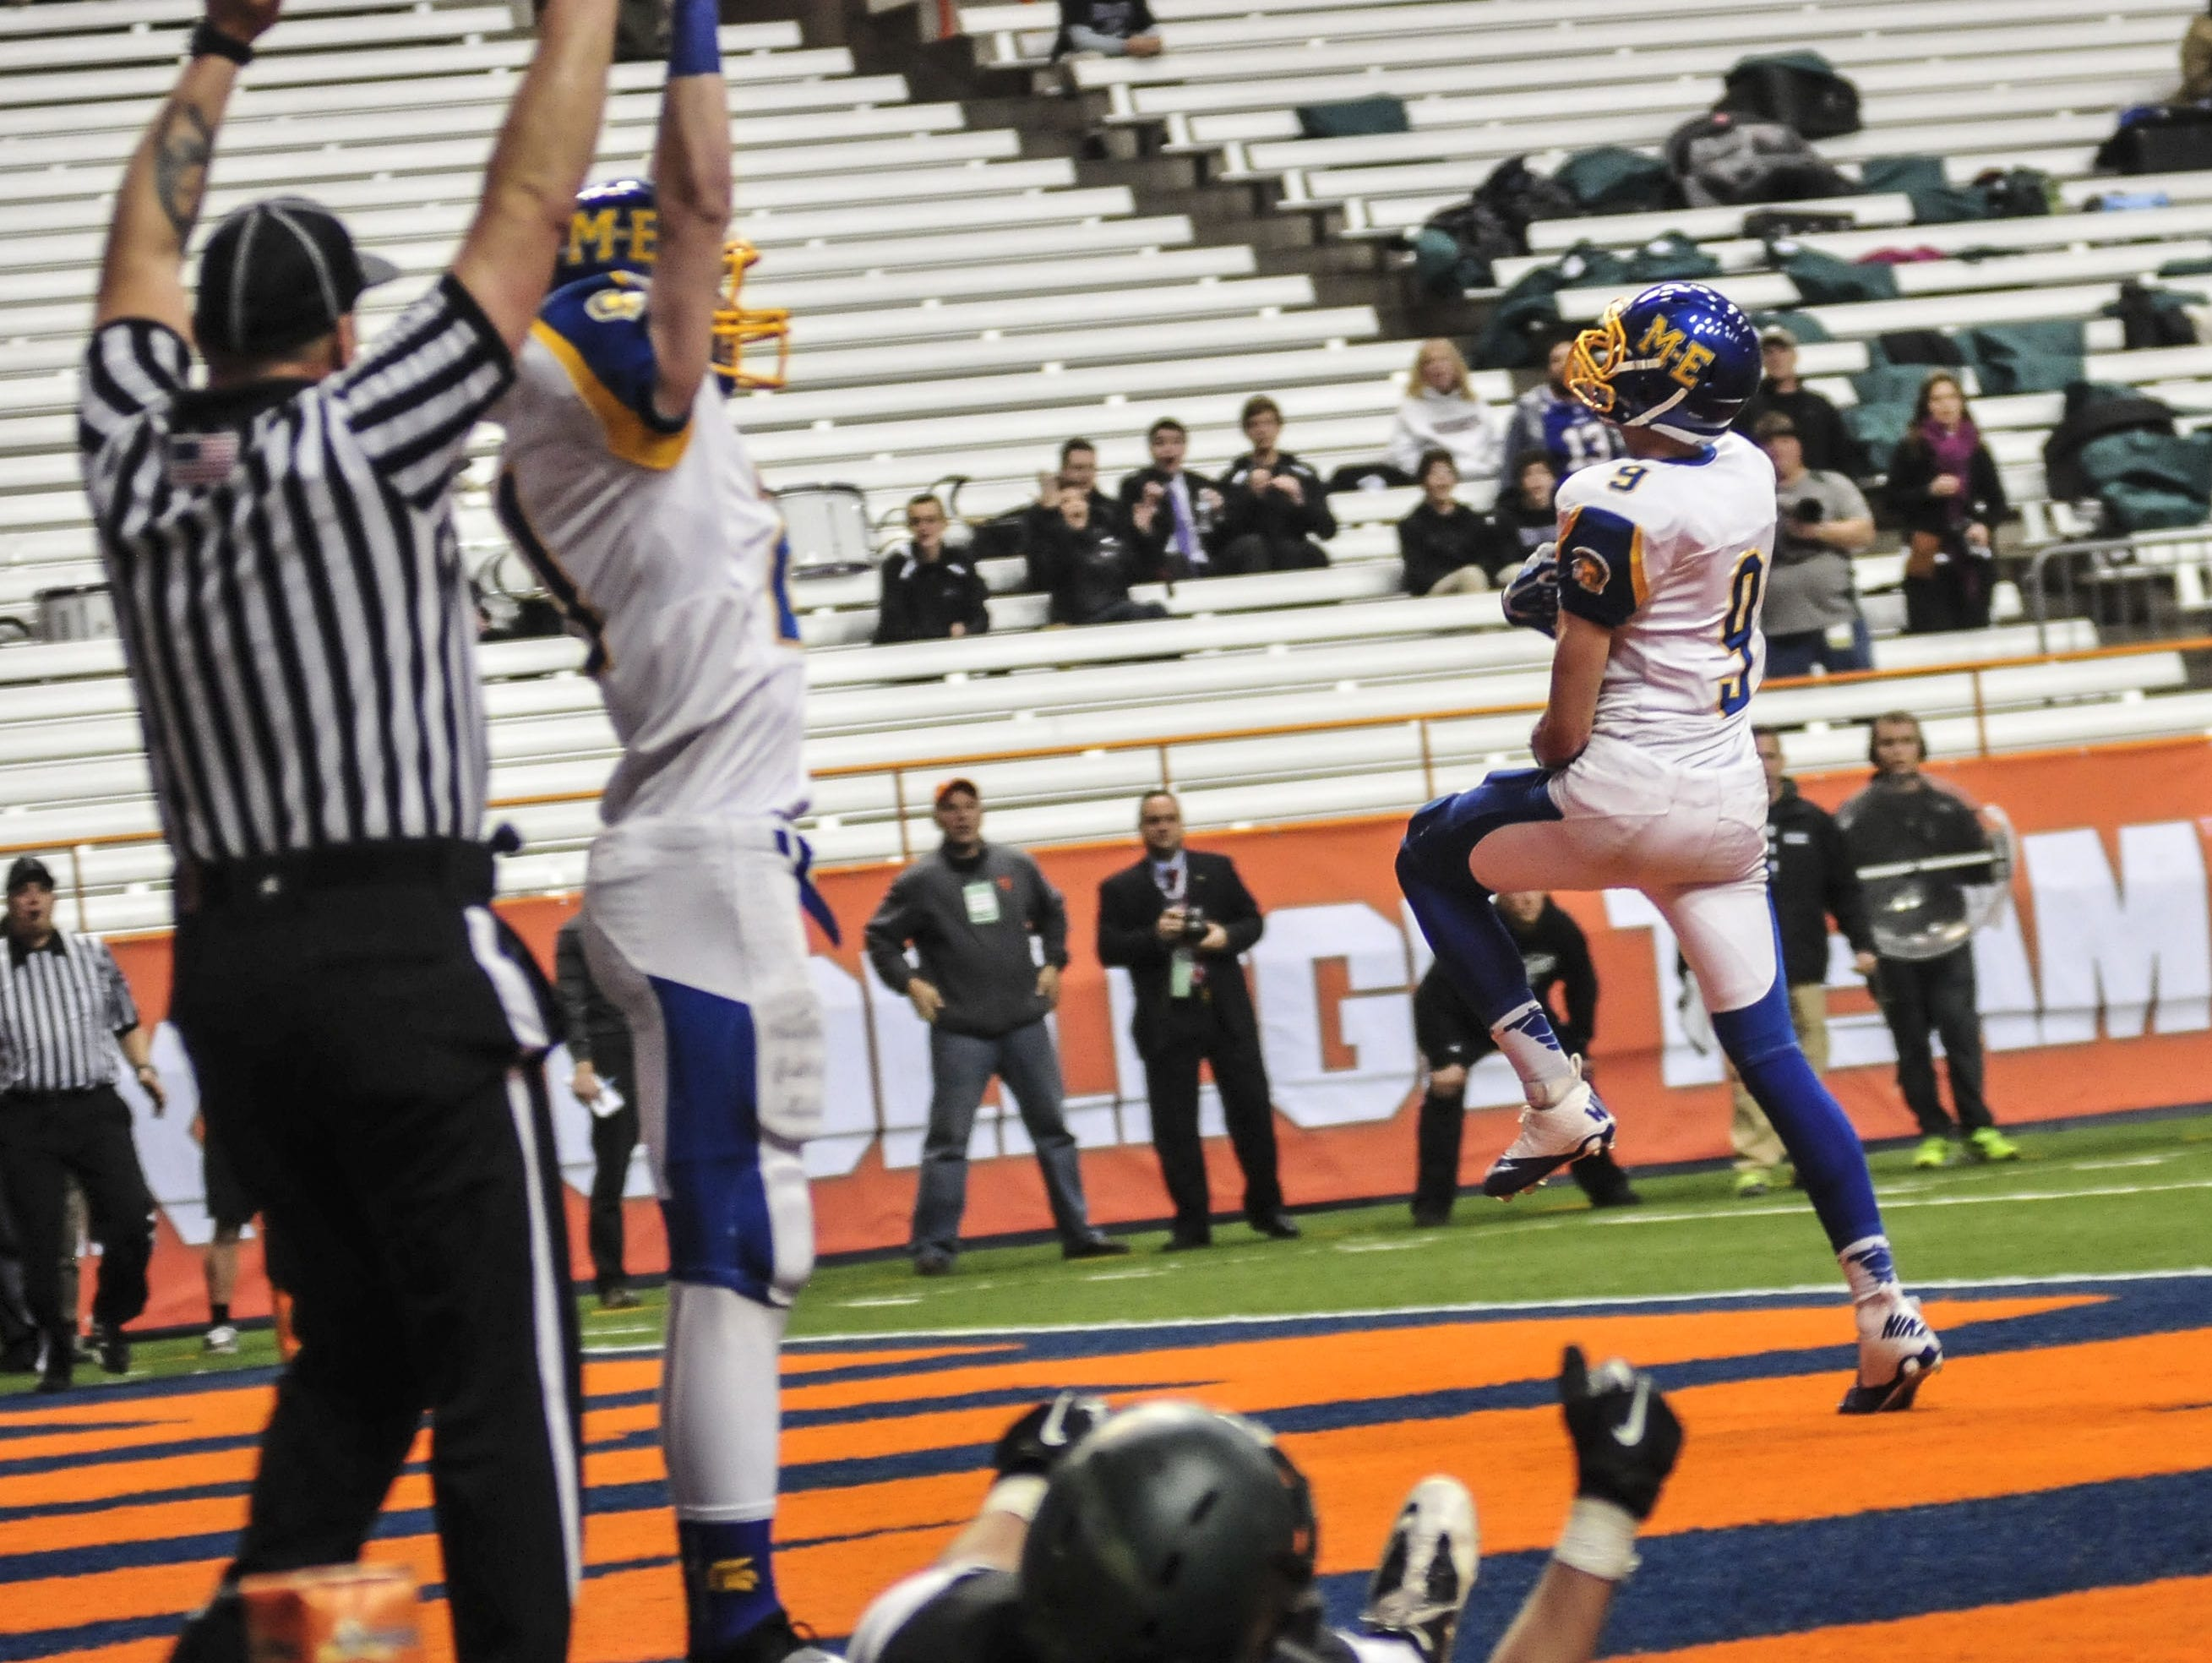 Maine-Endwell's Kyle Gallagher targets Jake Sinicki in the end zone to bring the score to 20-21 against Schalmont Endwell during the 2013 New York State Public High School Athletic Association Football Class B Championship at the Carrier Dome in Syracuse.